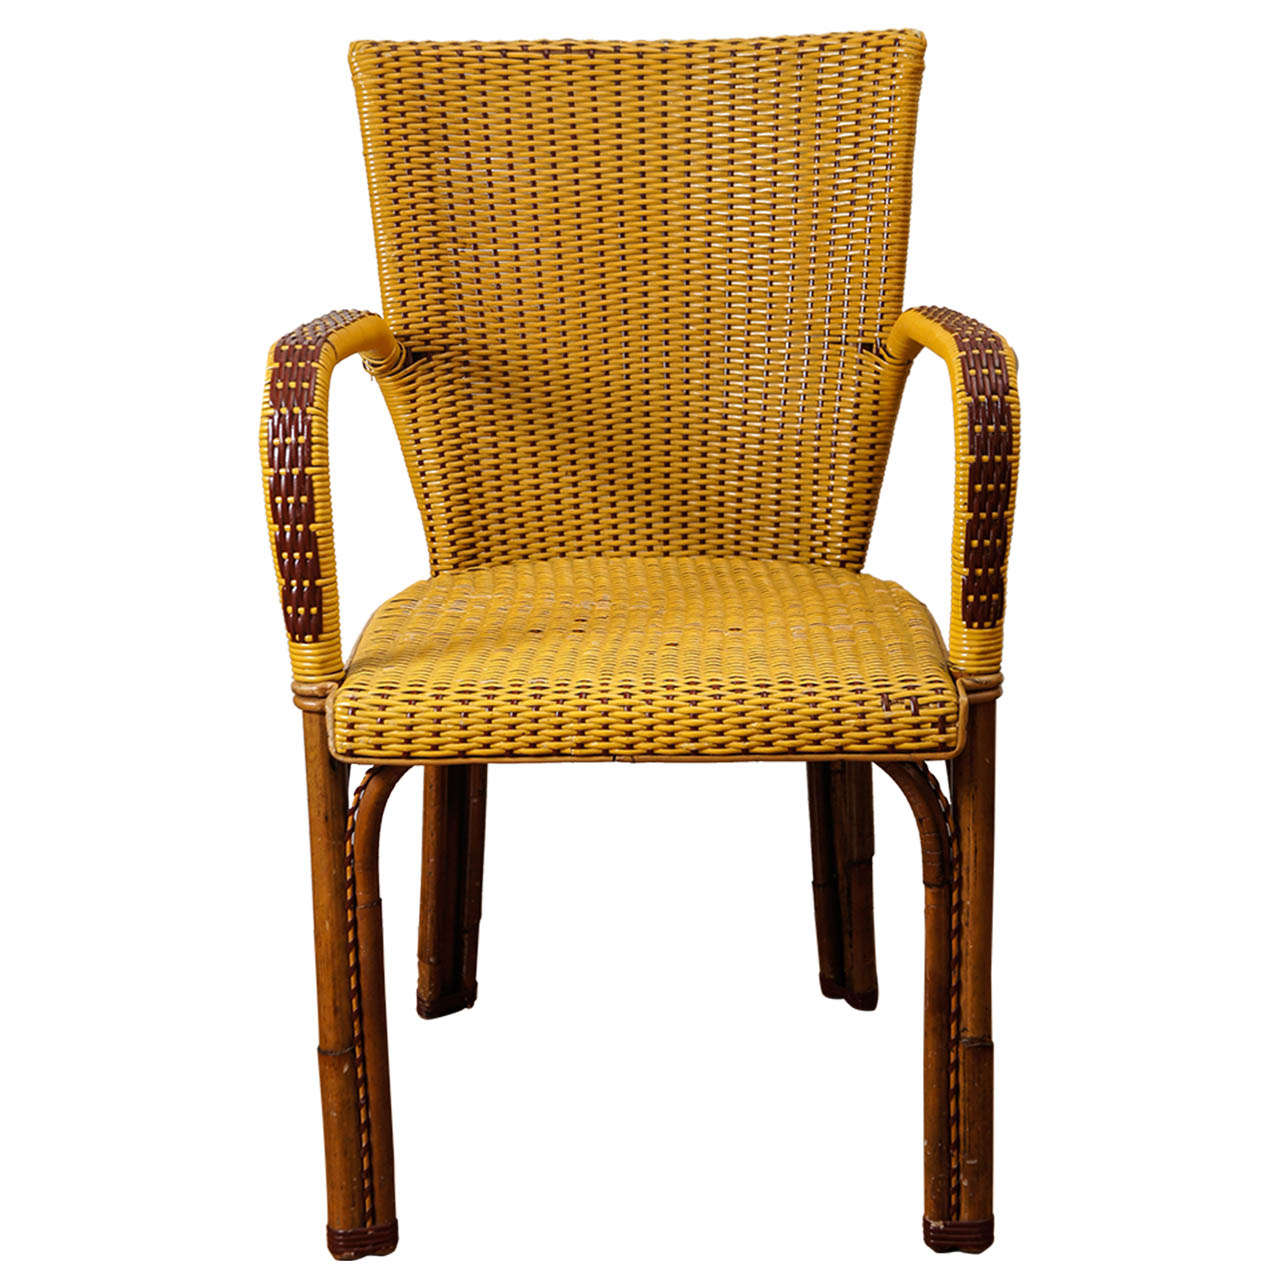 french rattan bistro chairs chair covers plymouth wicker at 1stdibs